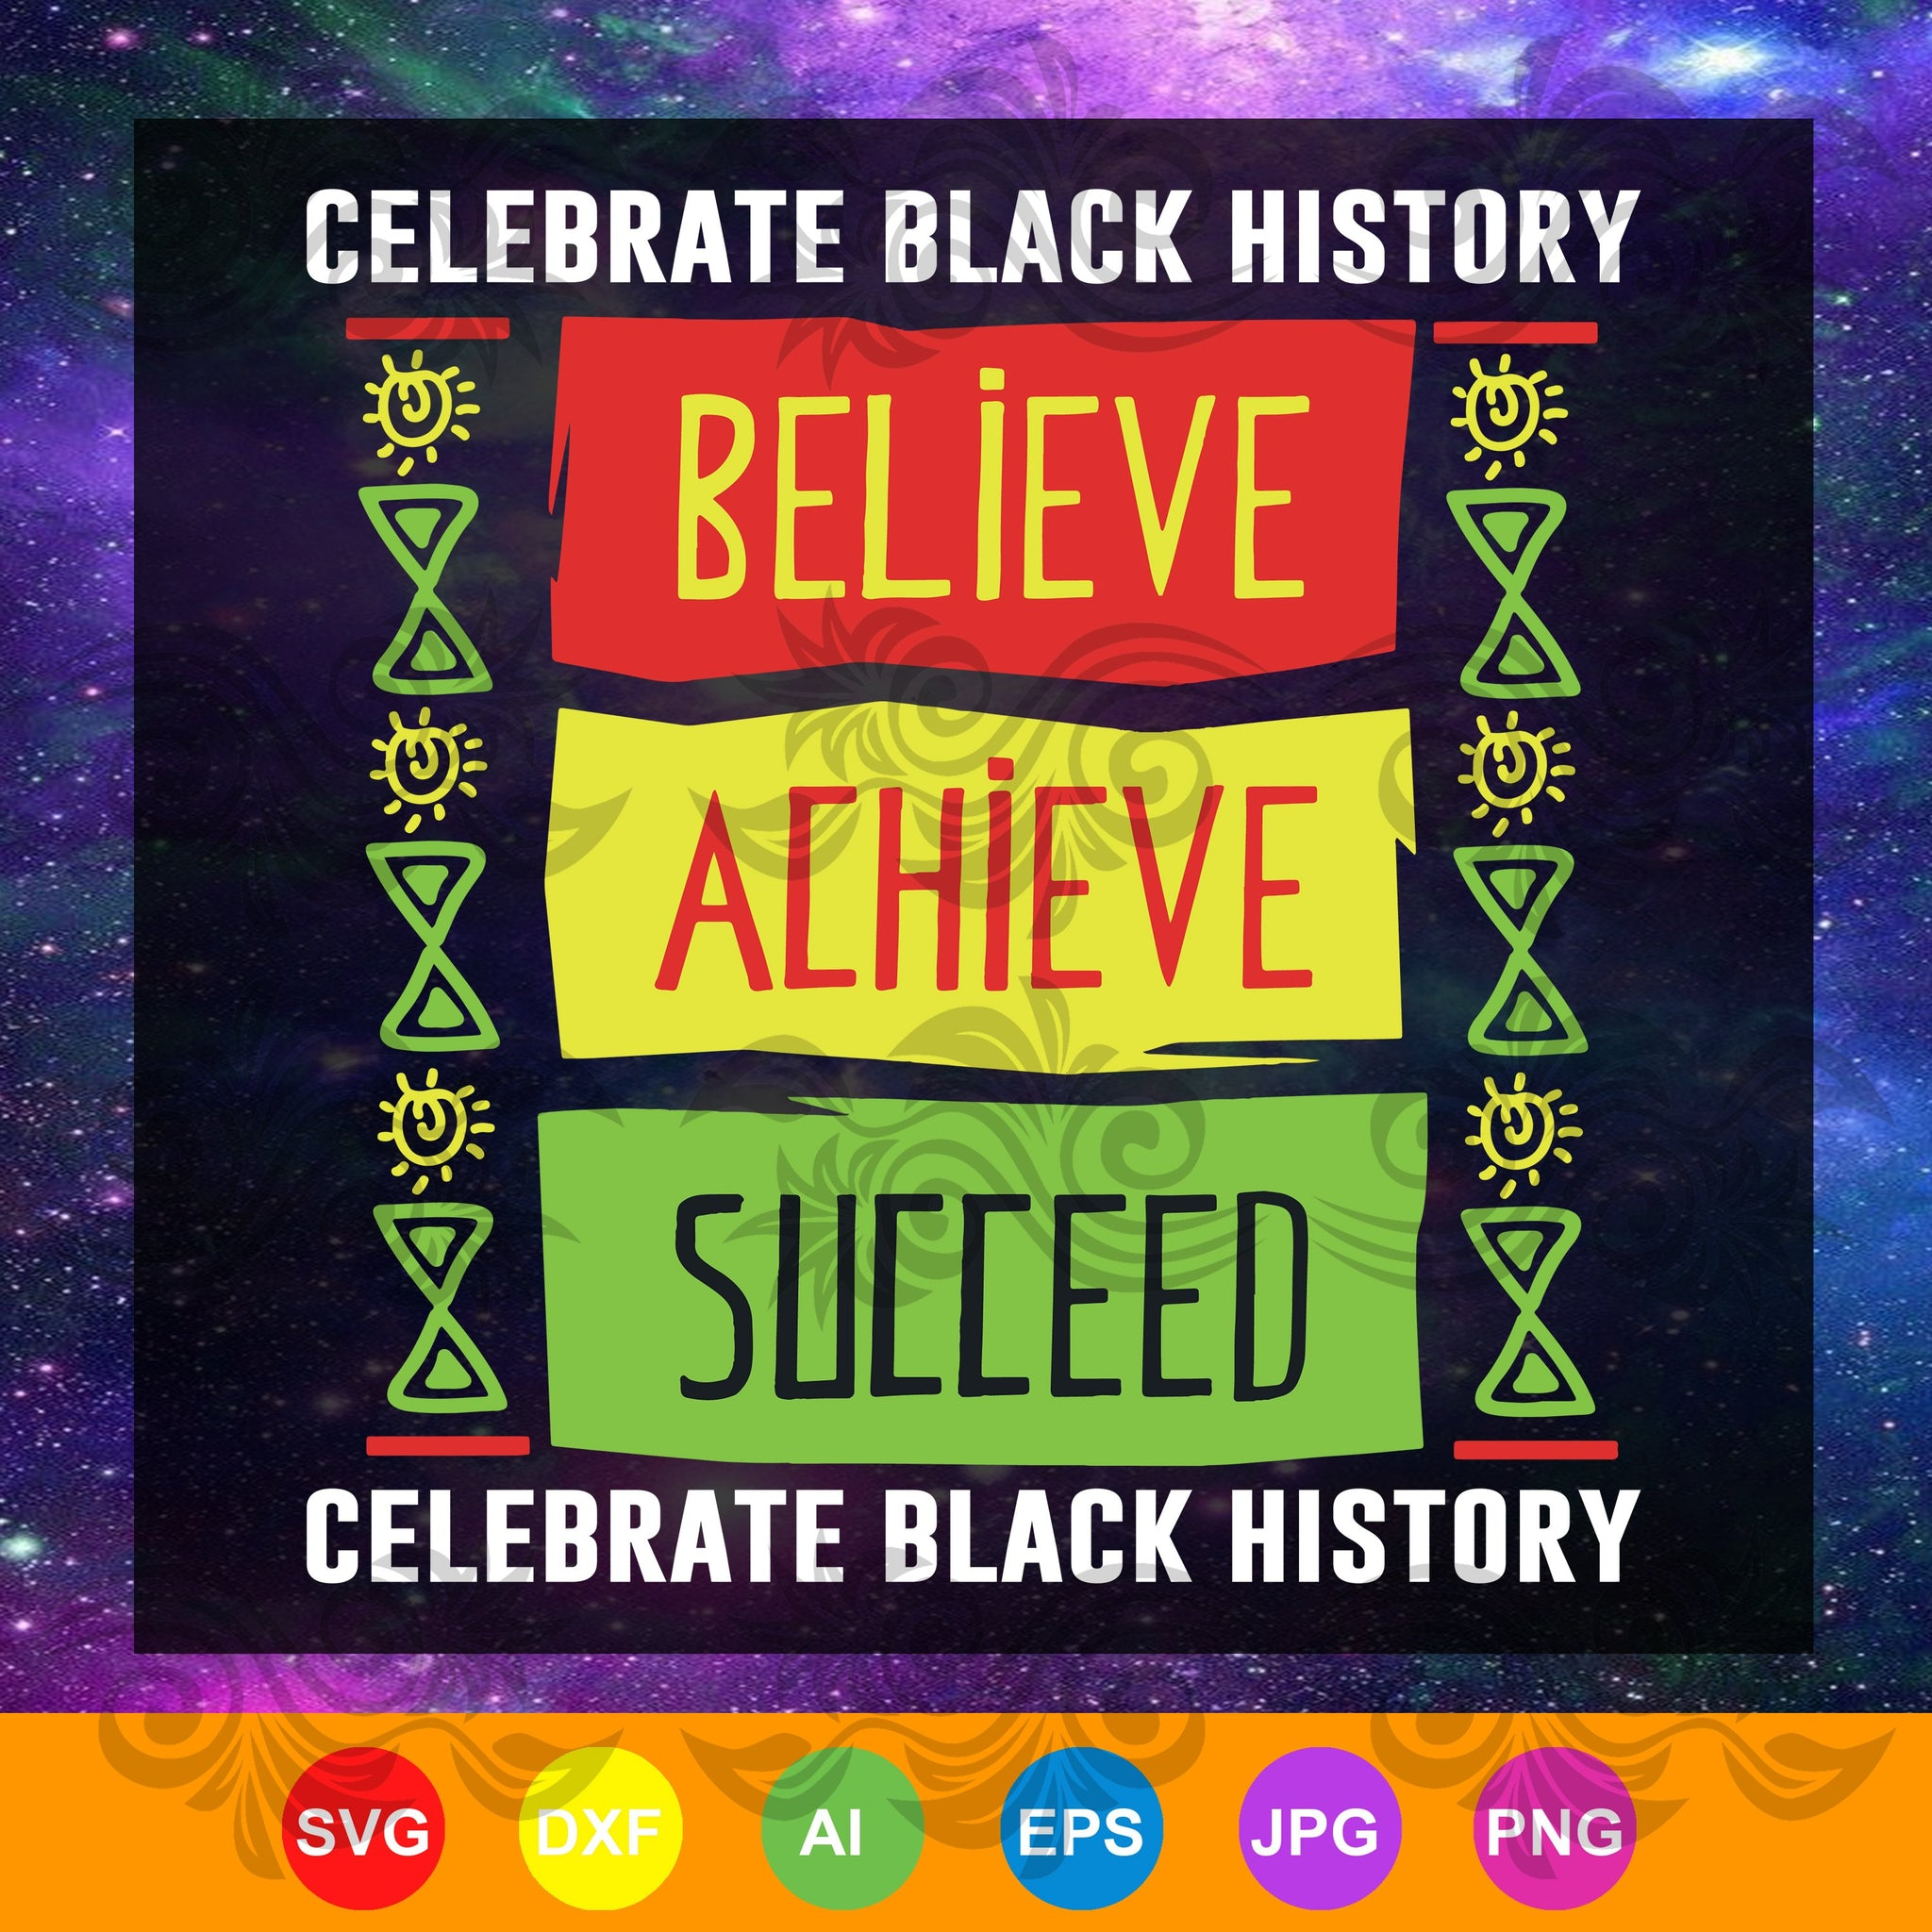 Believe Achieve Succeed Black History Gift Political svg, believe svg, Achieve svg, succeed svg,trending svg, Files For Silhouette, Files For Cricut, SVG, DXF, EPS, PNG, Instant Download